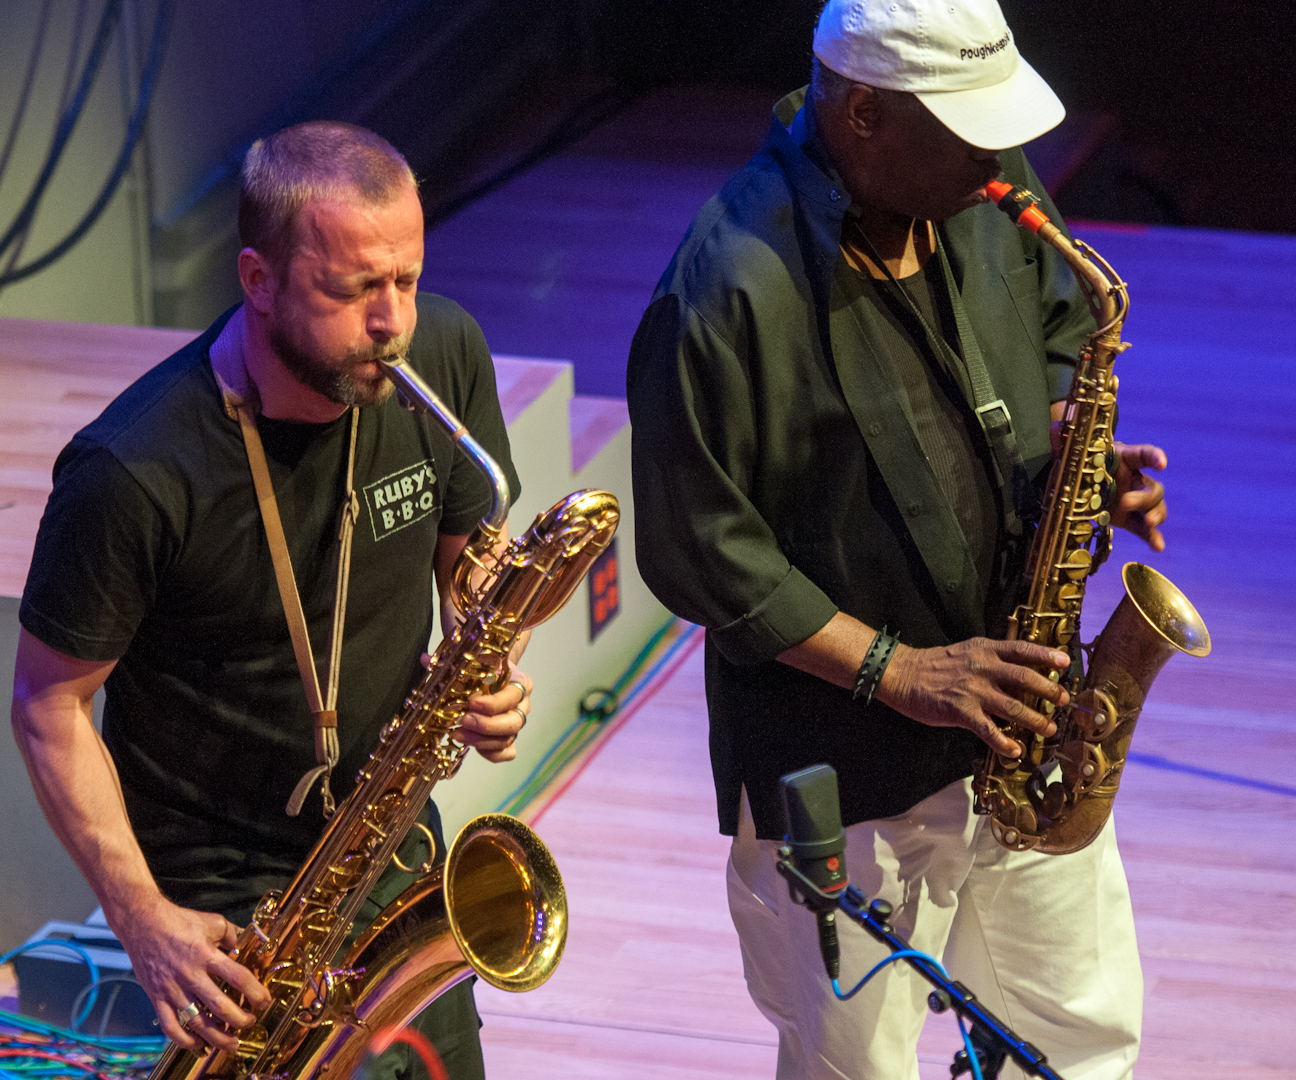 Mats Gustafsson And Joe Mcphee With The Thing At The Vision Festival 2012